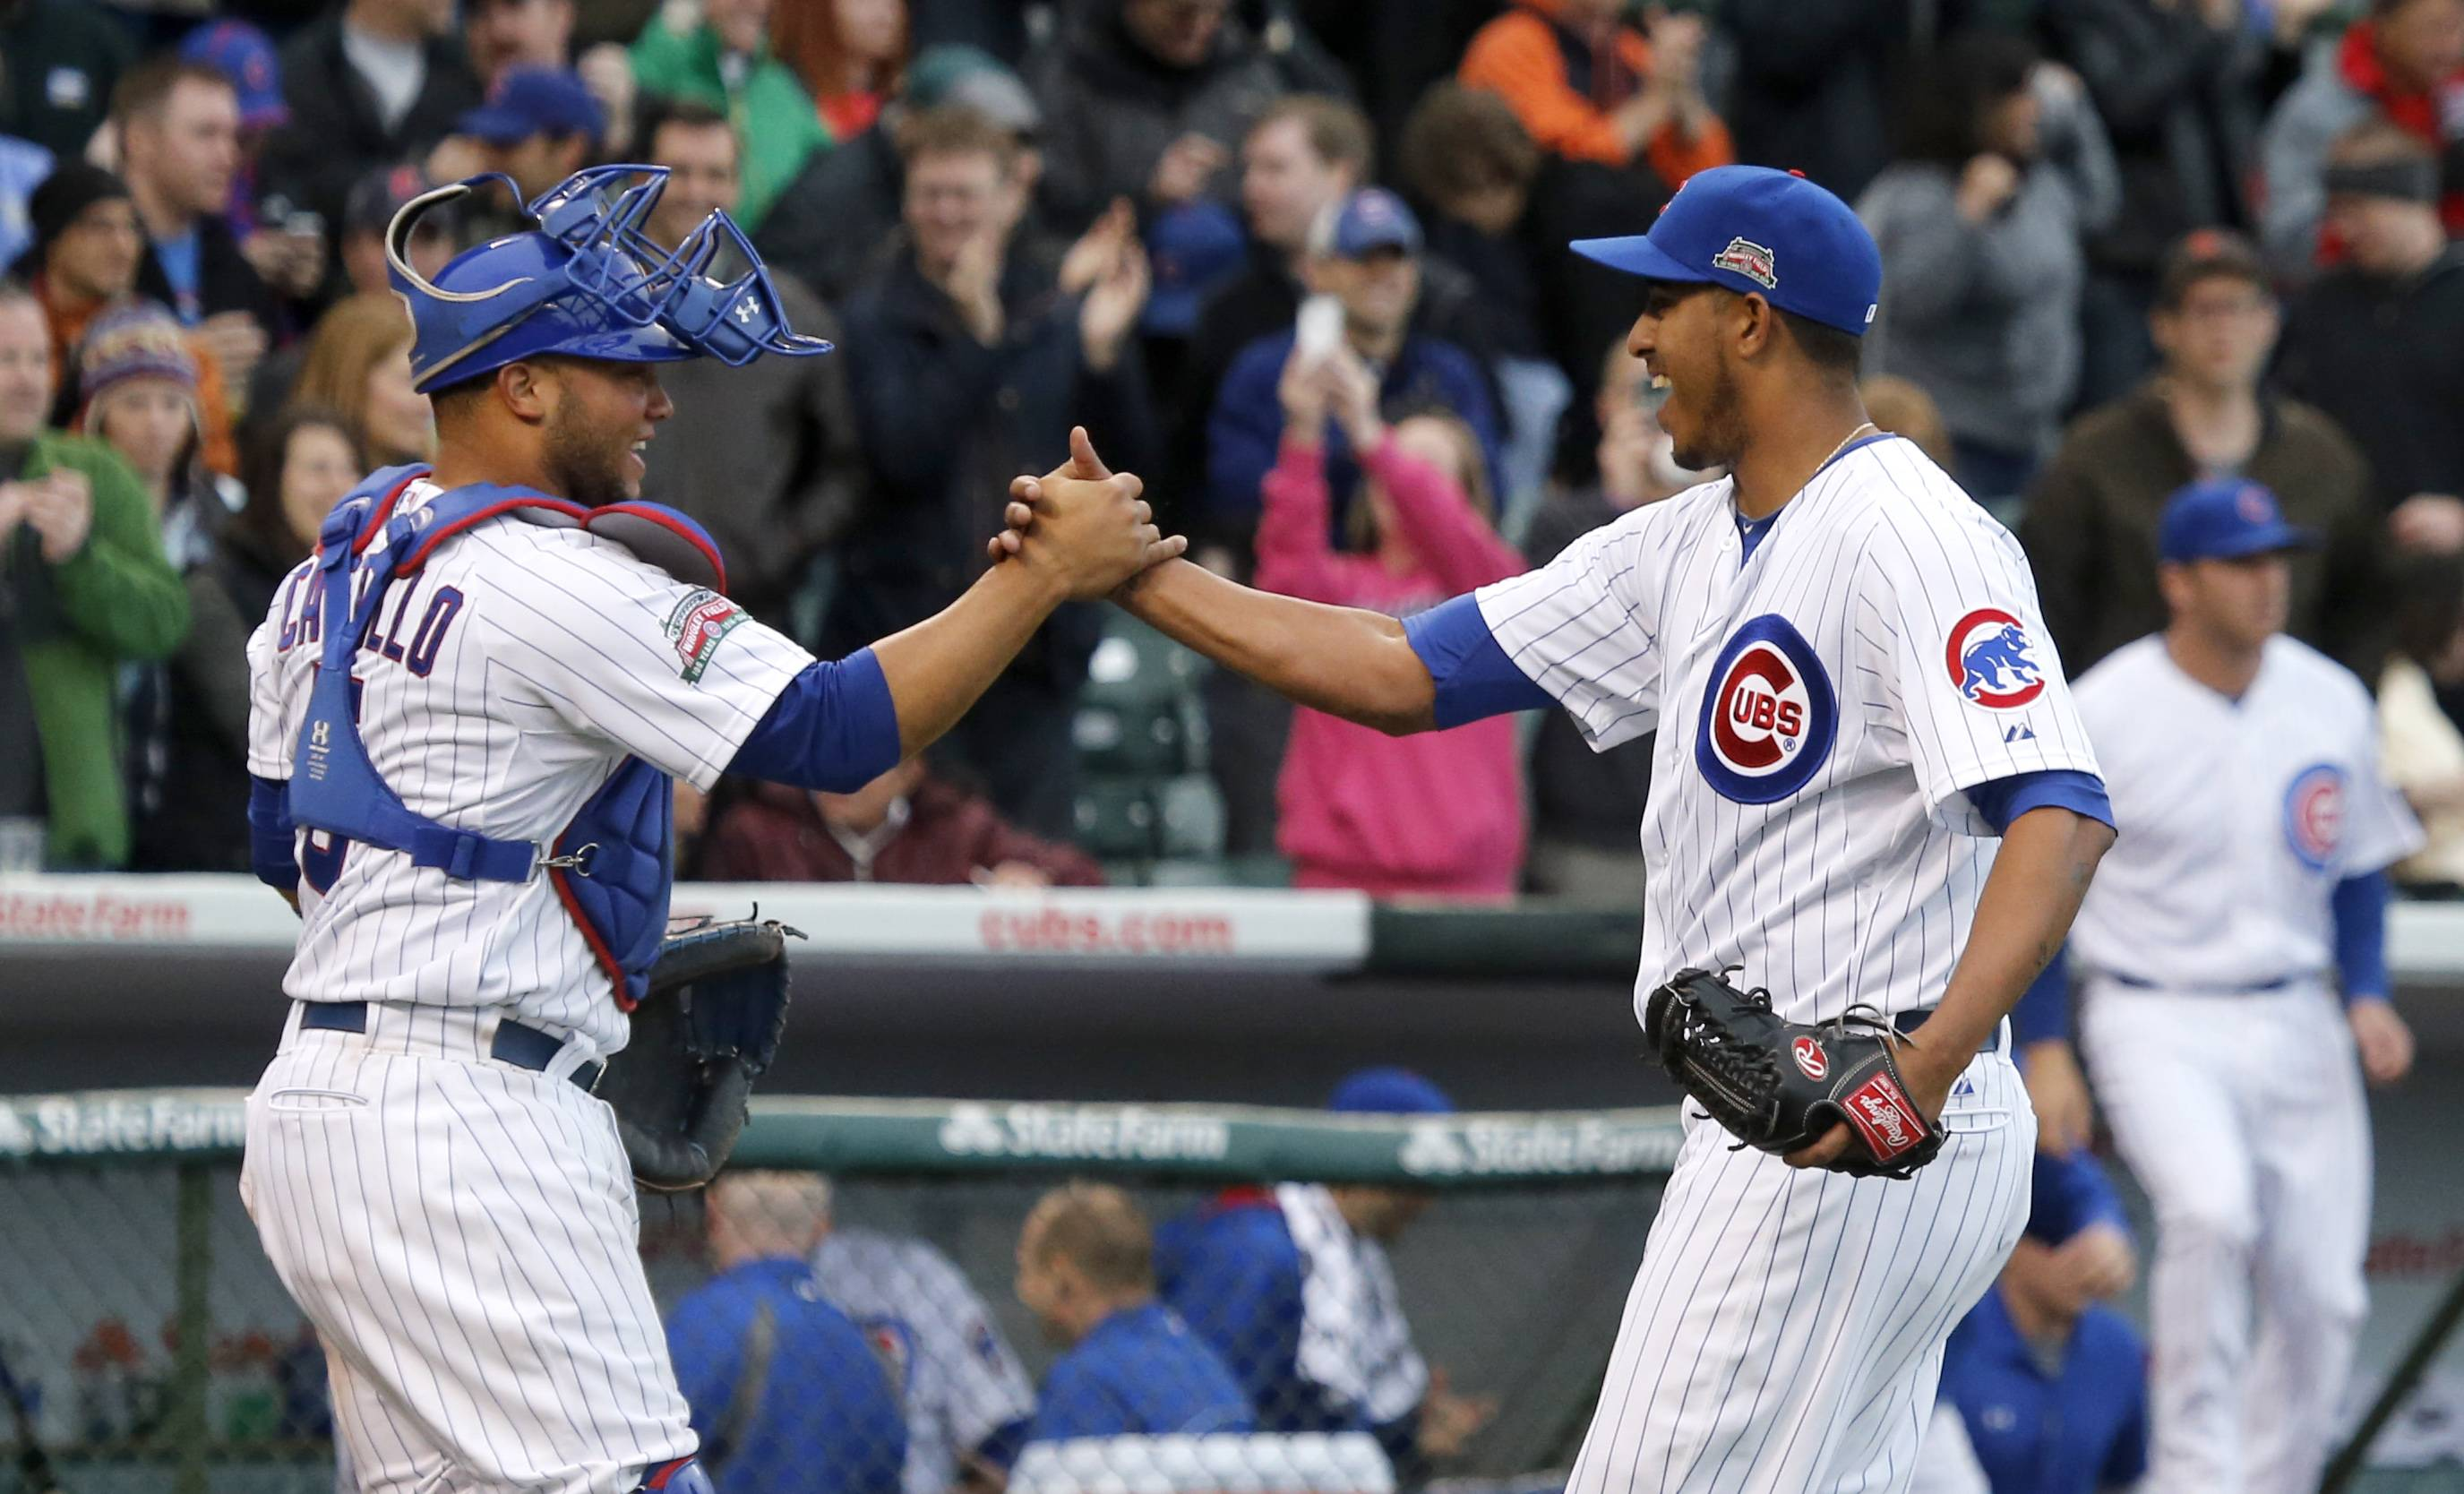 Reliever Hector Rondon celebrates the Cubs' 6-5 victory over the Cardinals with catcher Welington Castillo on Friday at Wrigley Field.